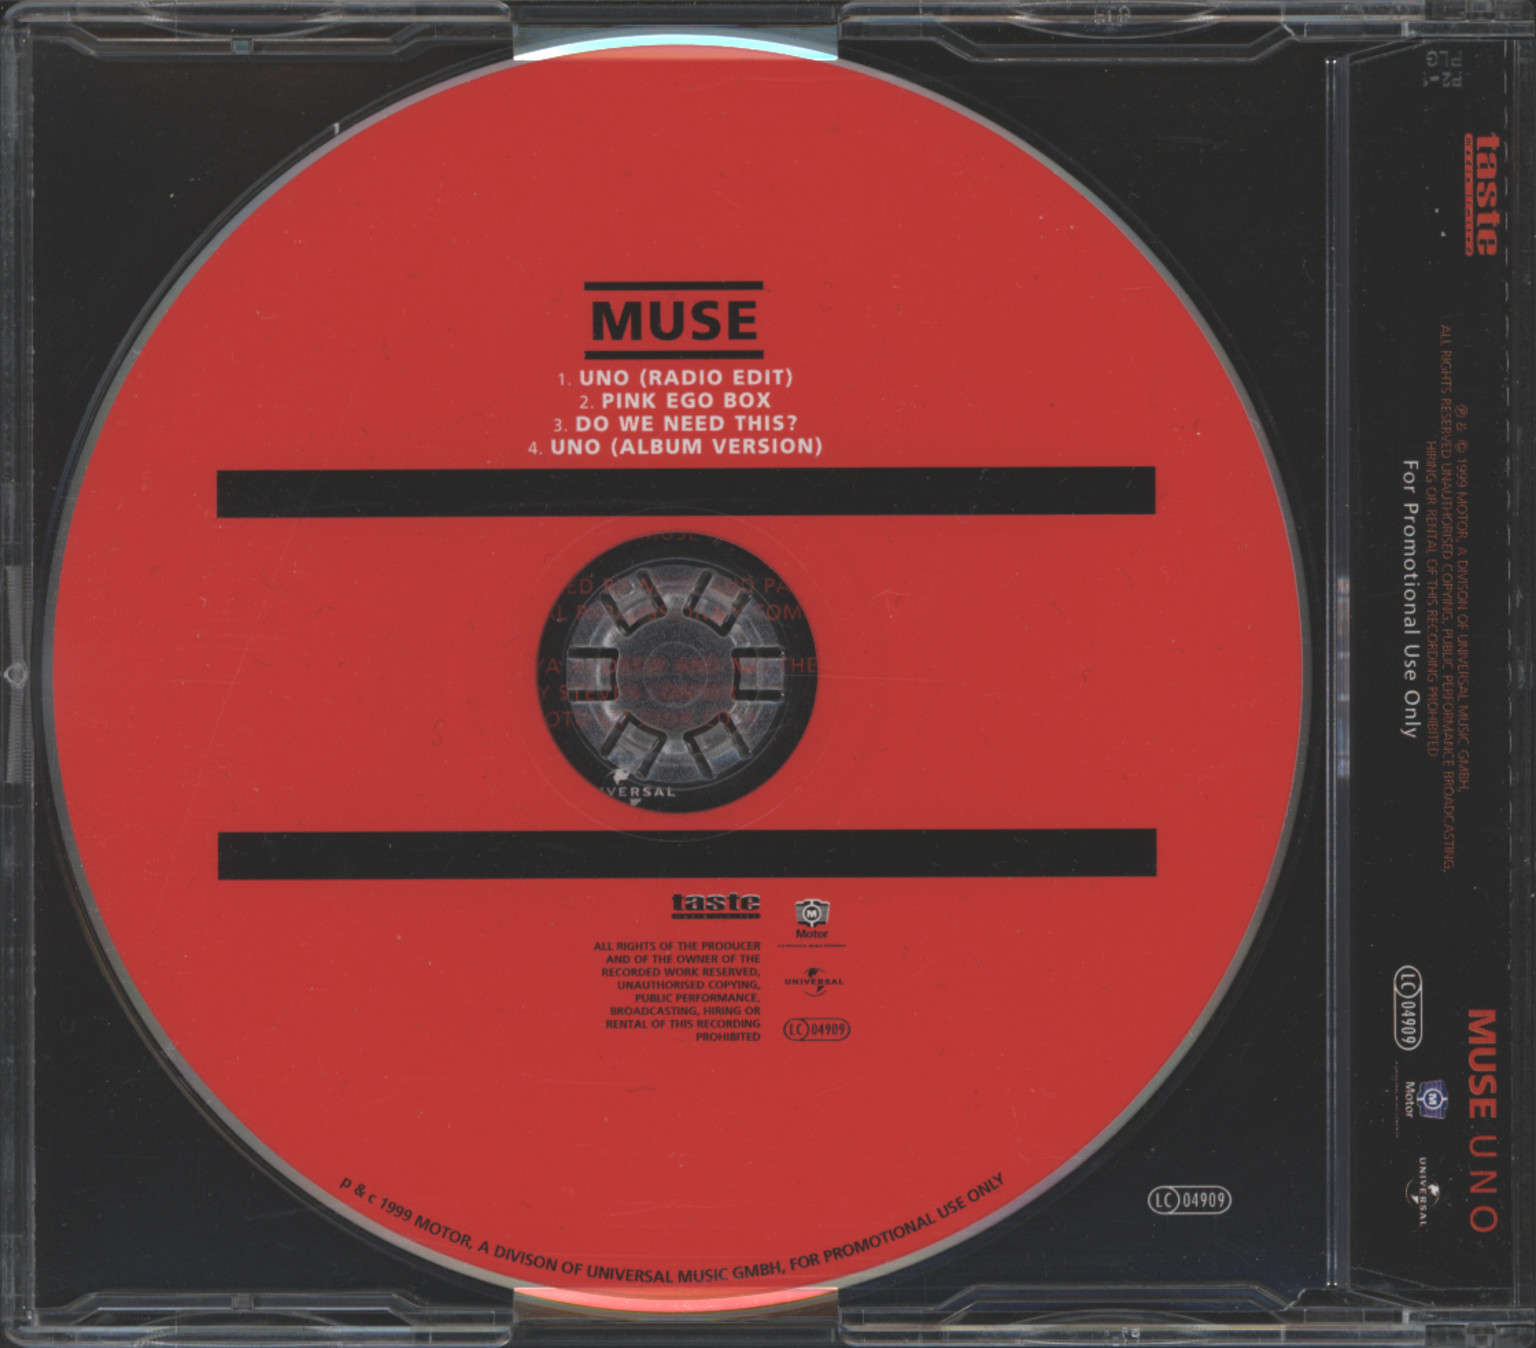 Muse: Uno, Mini CD